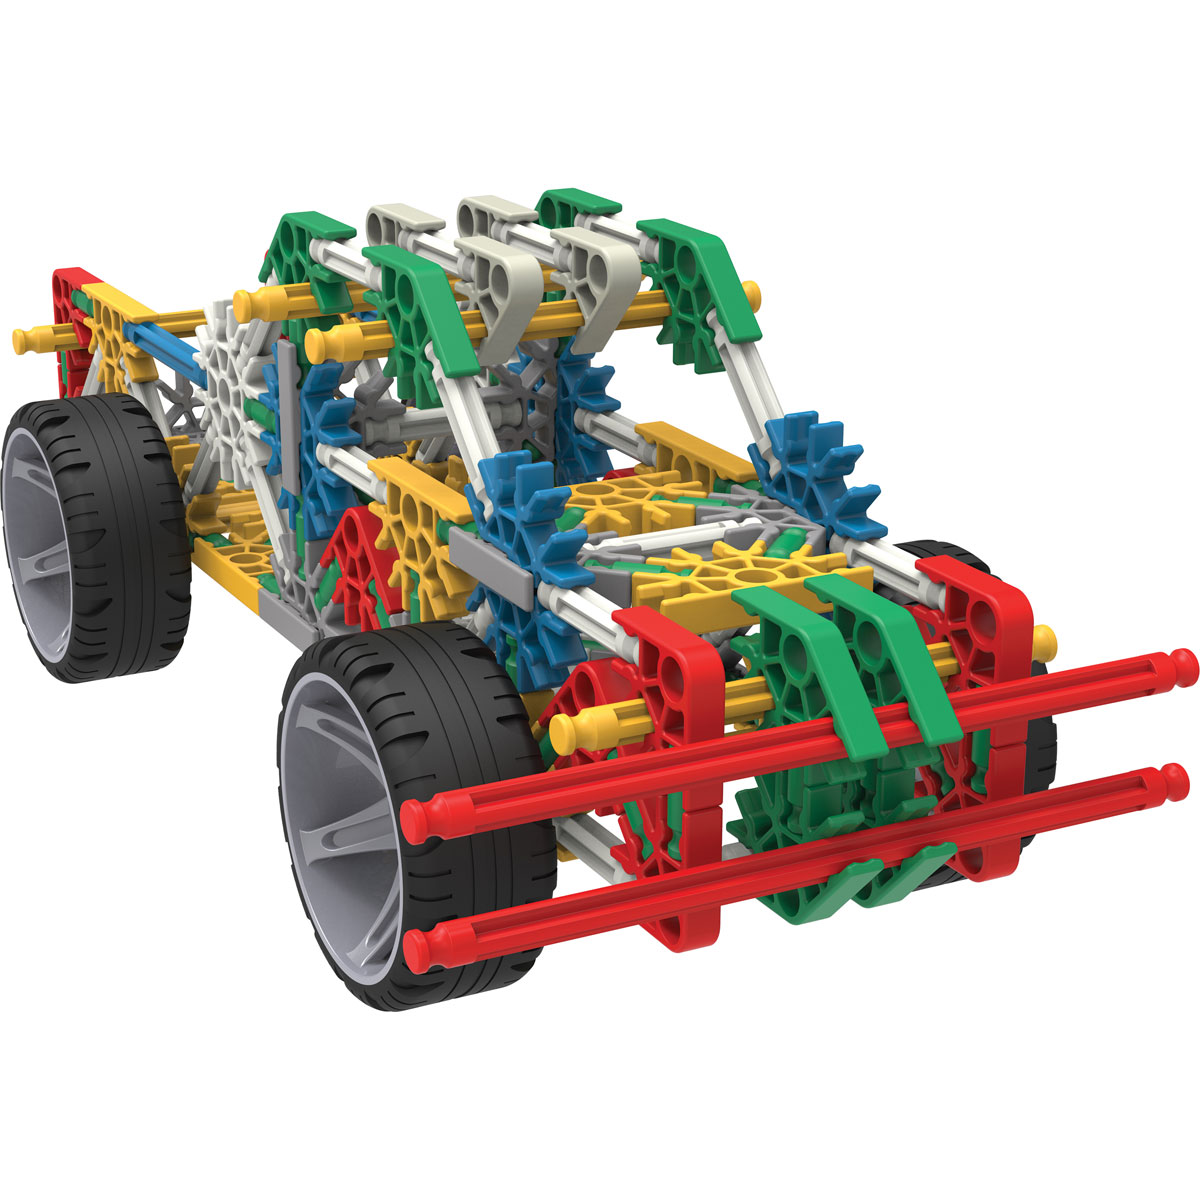 where can i buy remote control cars with K Nex 70 Model Building Set 705 Pieces Knex Education Kx13419 Dhkx13419 5721 on Where To Buy Kids Official Red 6v Audi Tt With Parental Remote A Fantastic Kids Toy Idea additionally 2051490717 moreover 32490218525 furthermore 2349268 32822095597 further Diecast 25 Cars Pack Maisto.